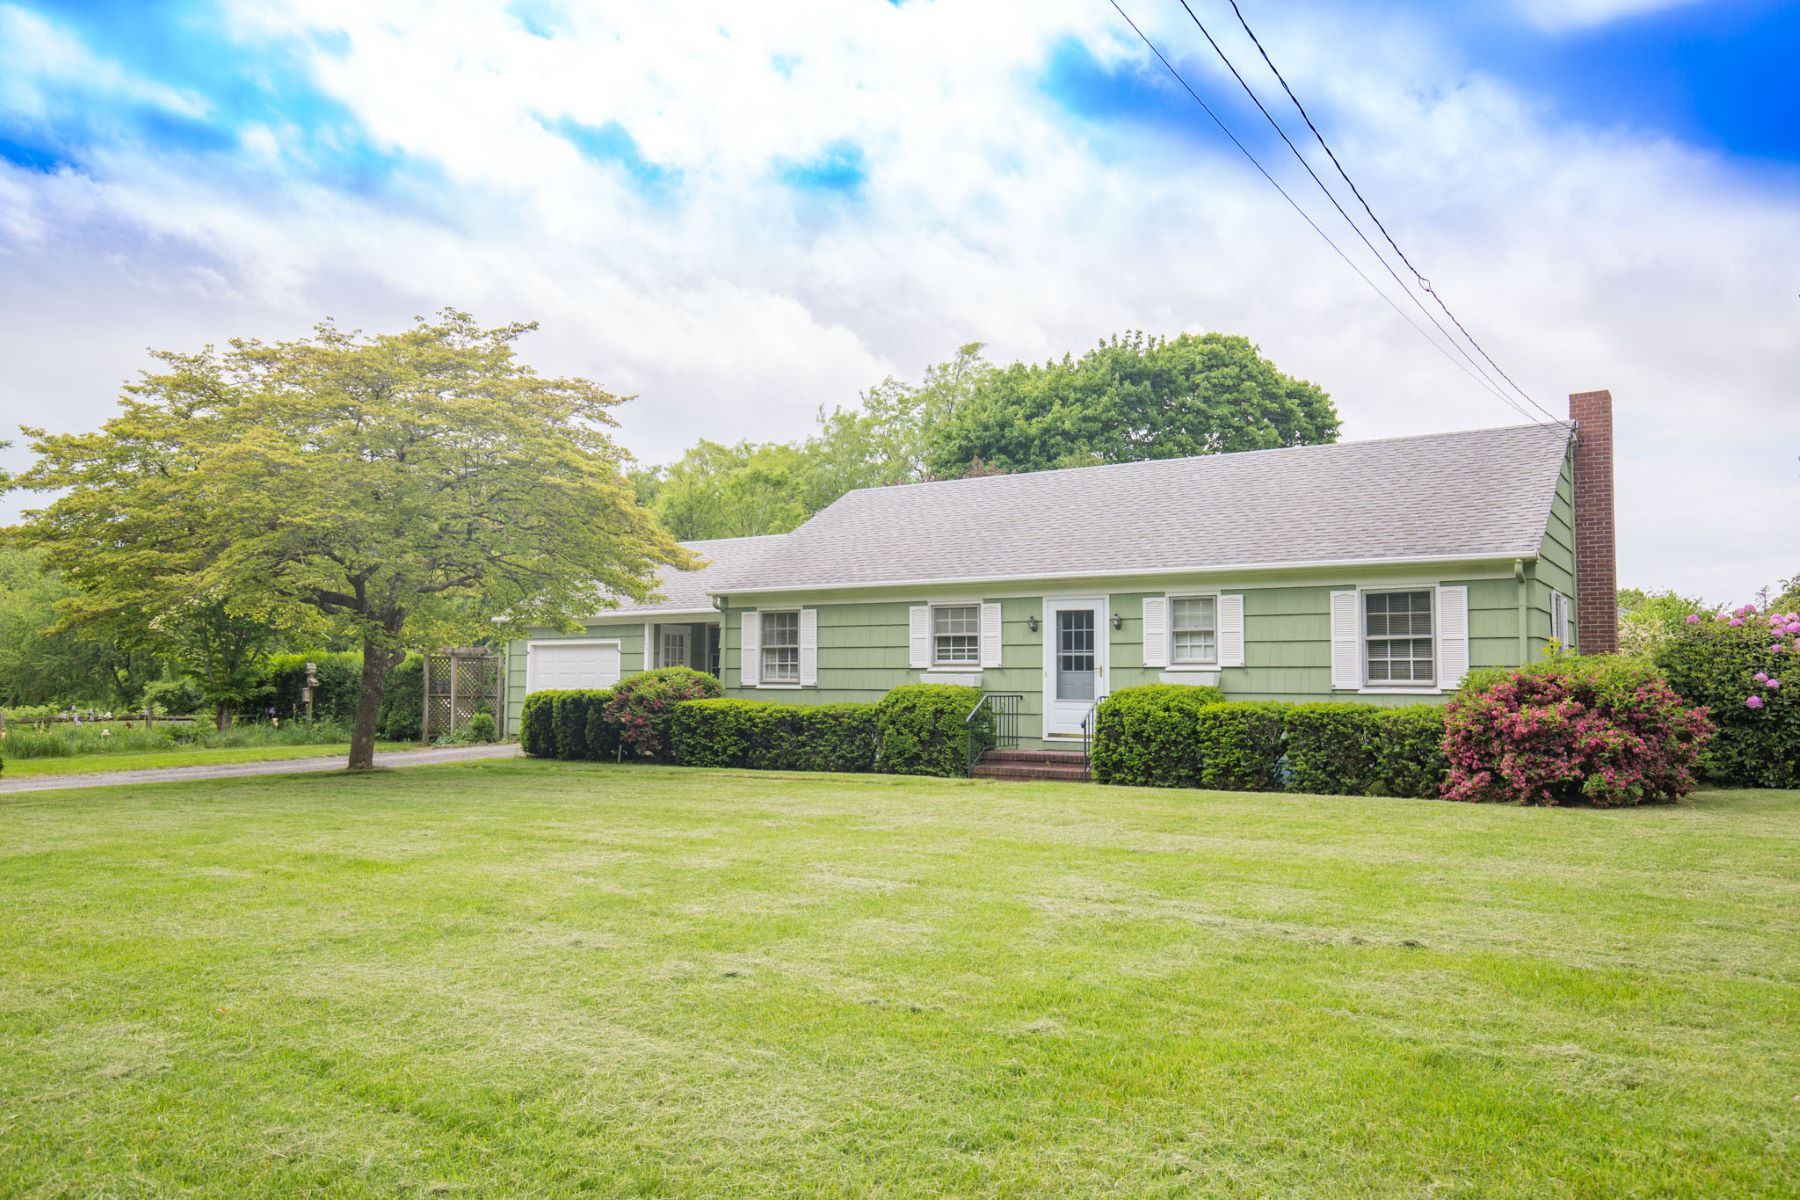 Single Family Home for Sale at 100 Old Pasture Rd 100 Old Pasture Rd Cutchogue, New York 11935 United States